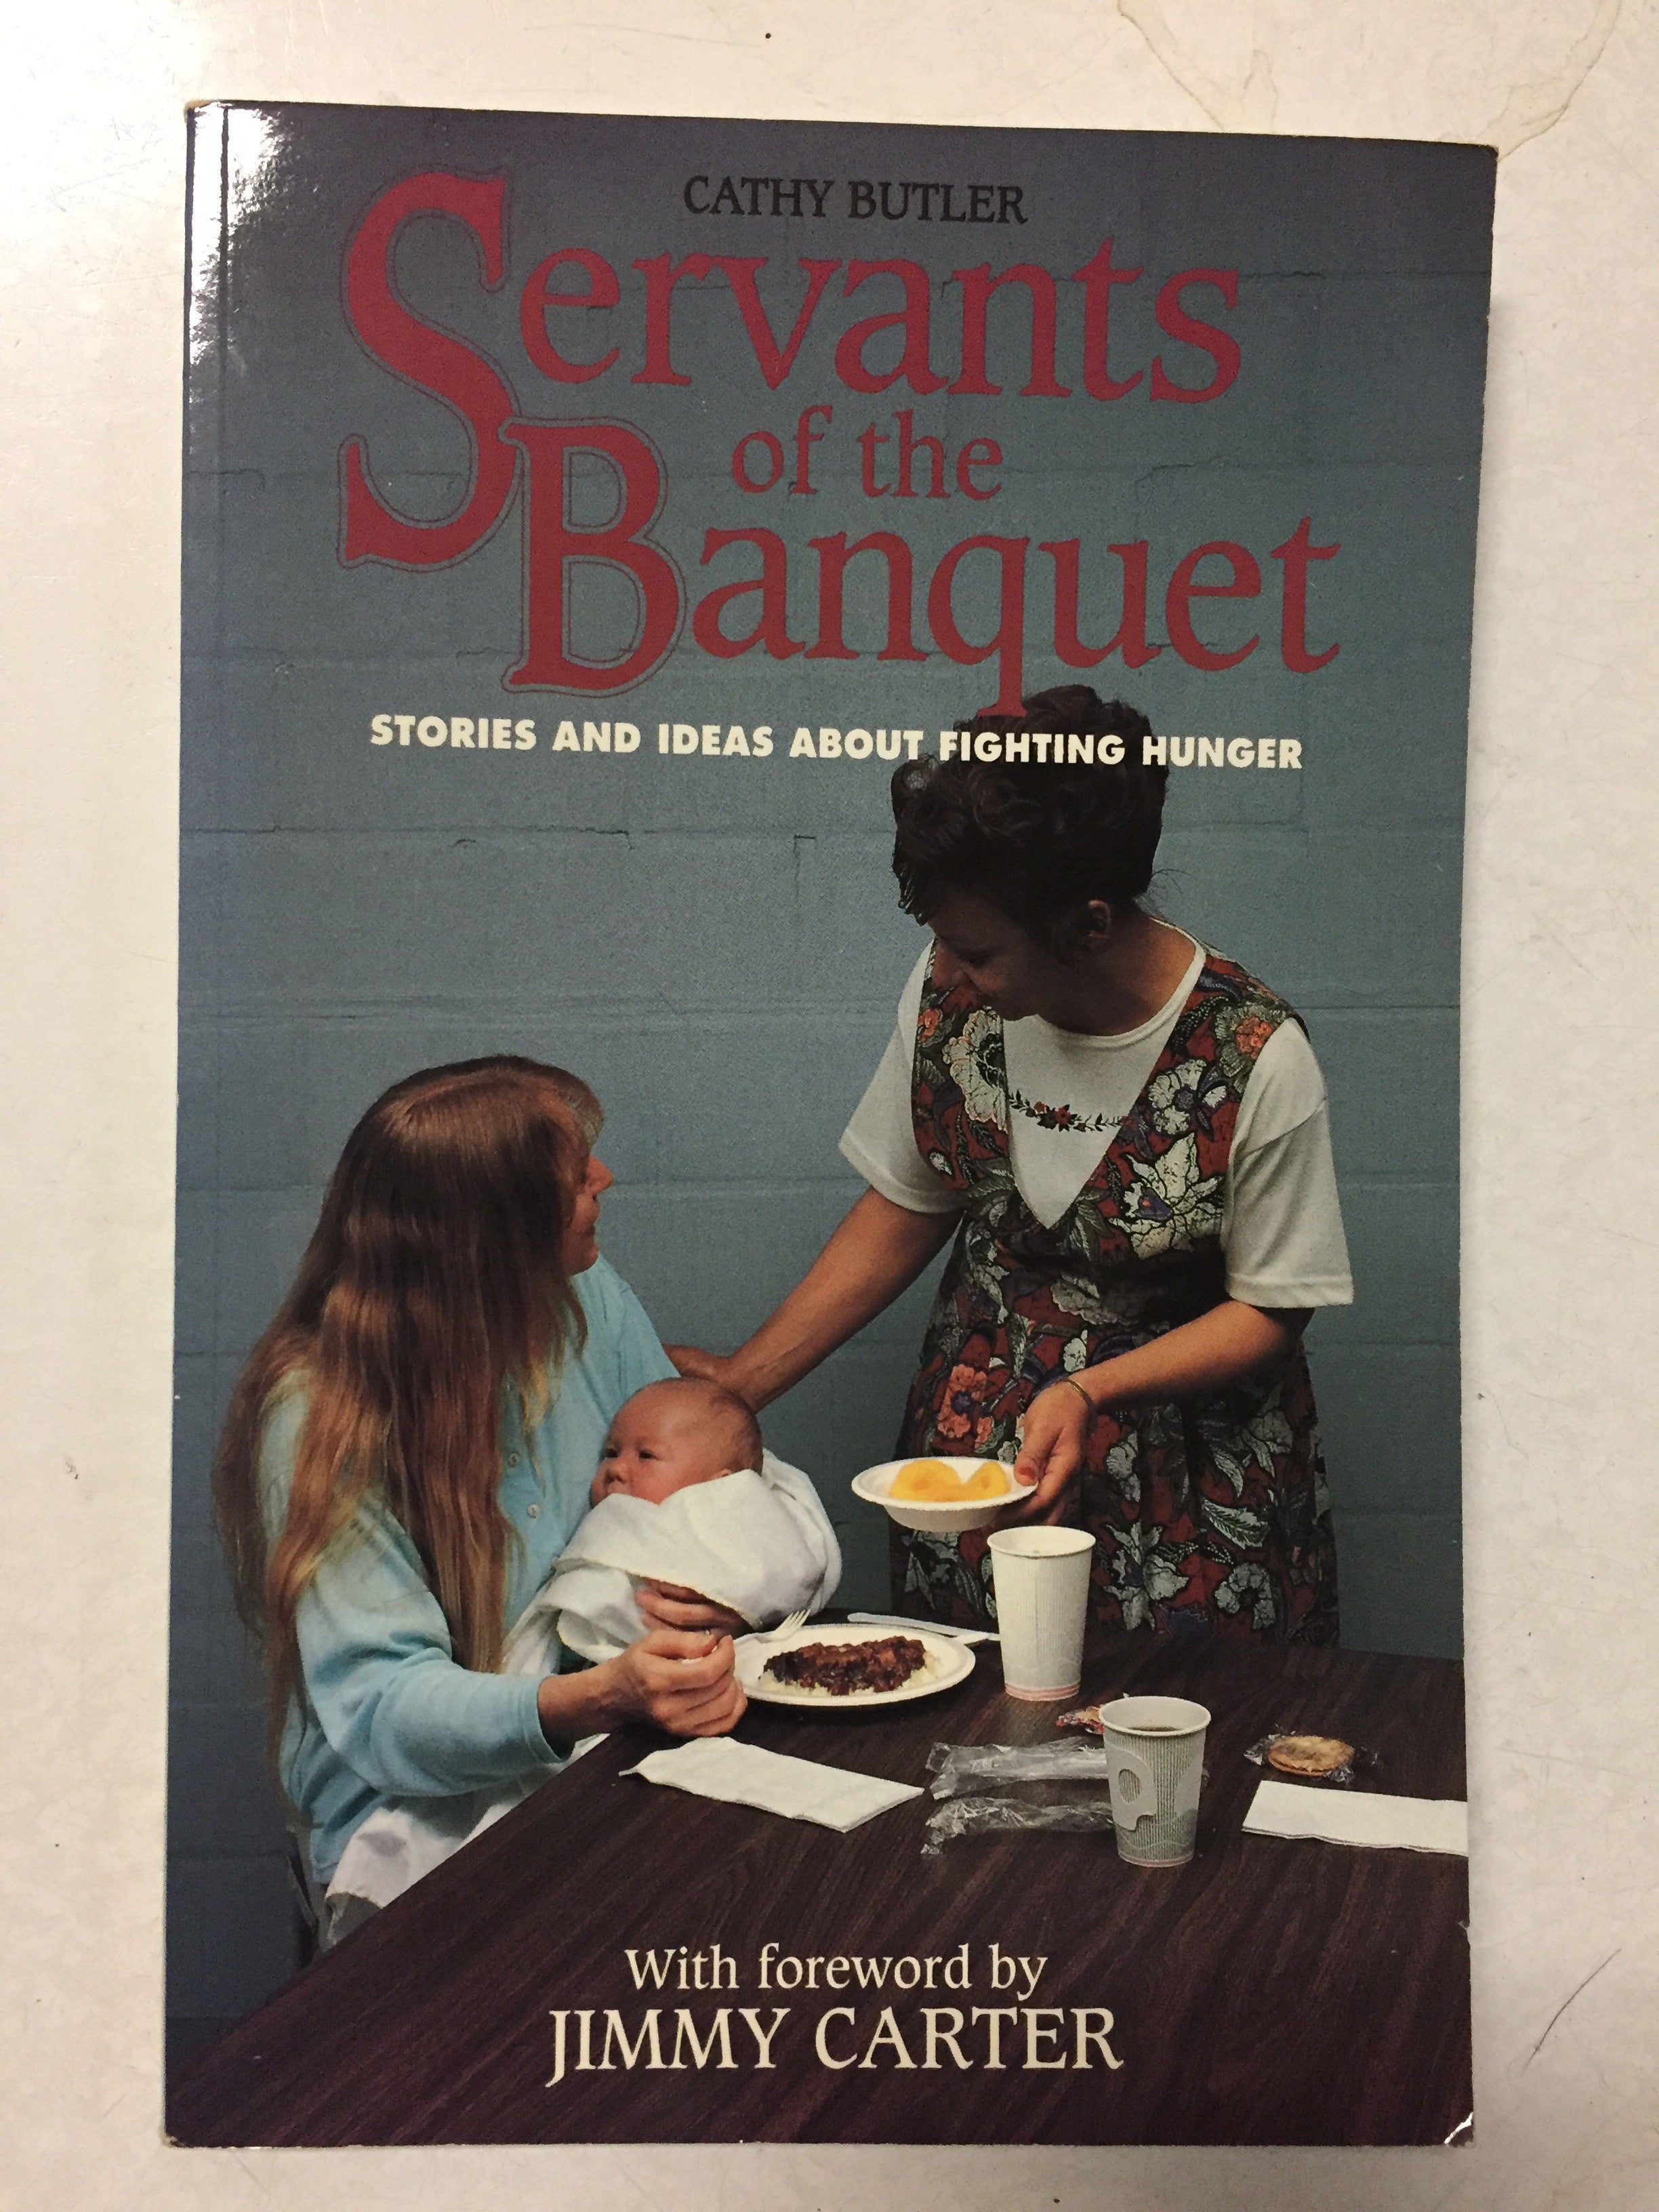 Servants of the Banquet Stories and Ideas About Fighting Hunger - Slickcatbooks